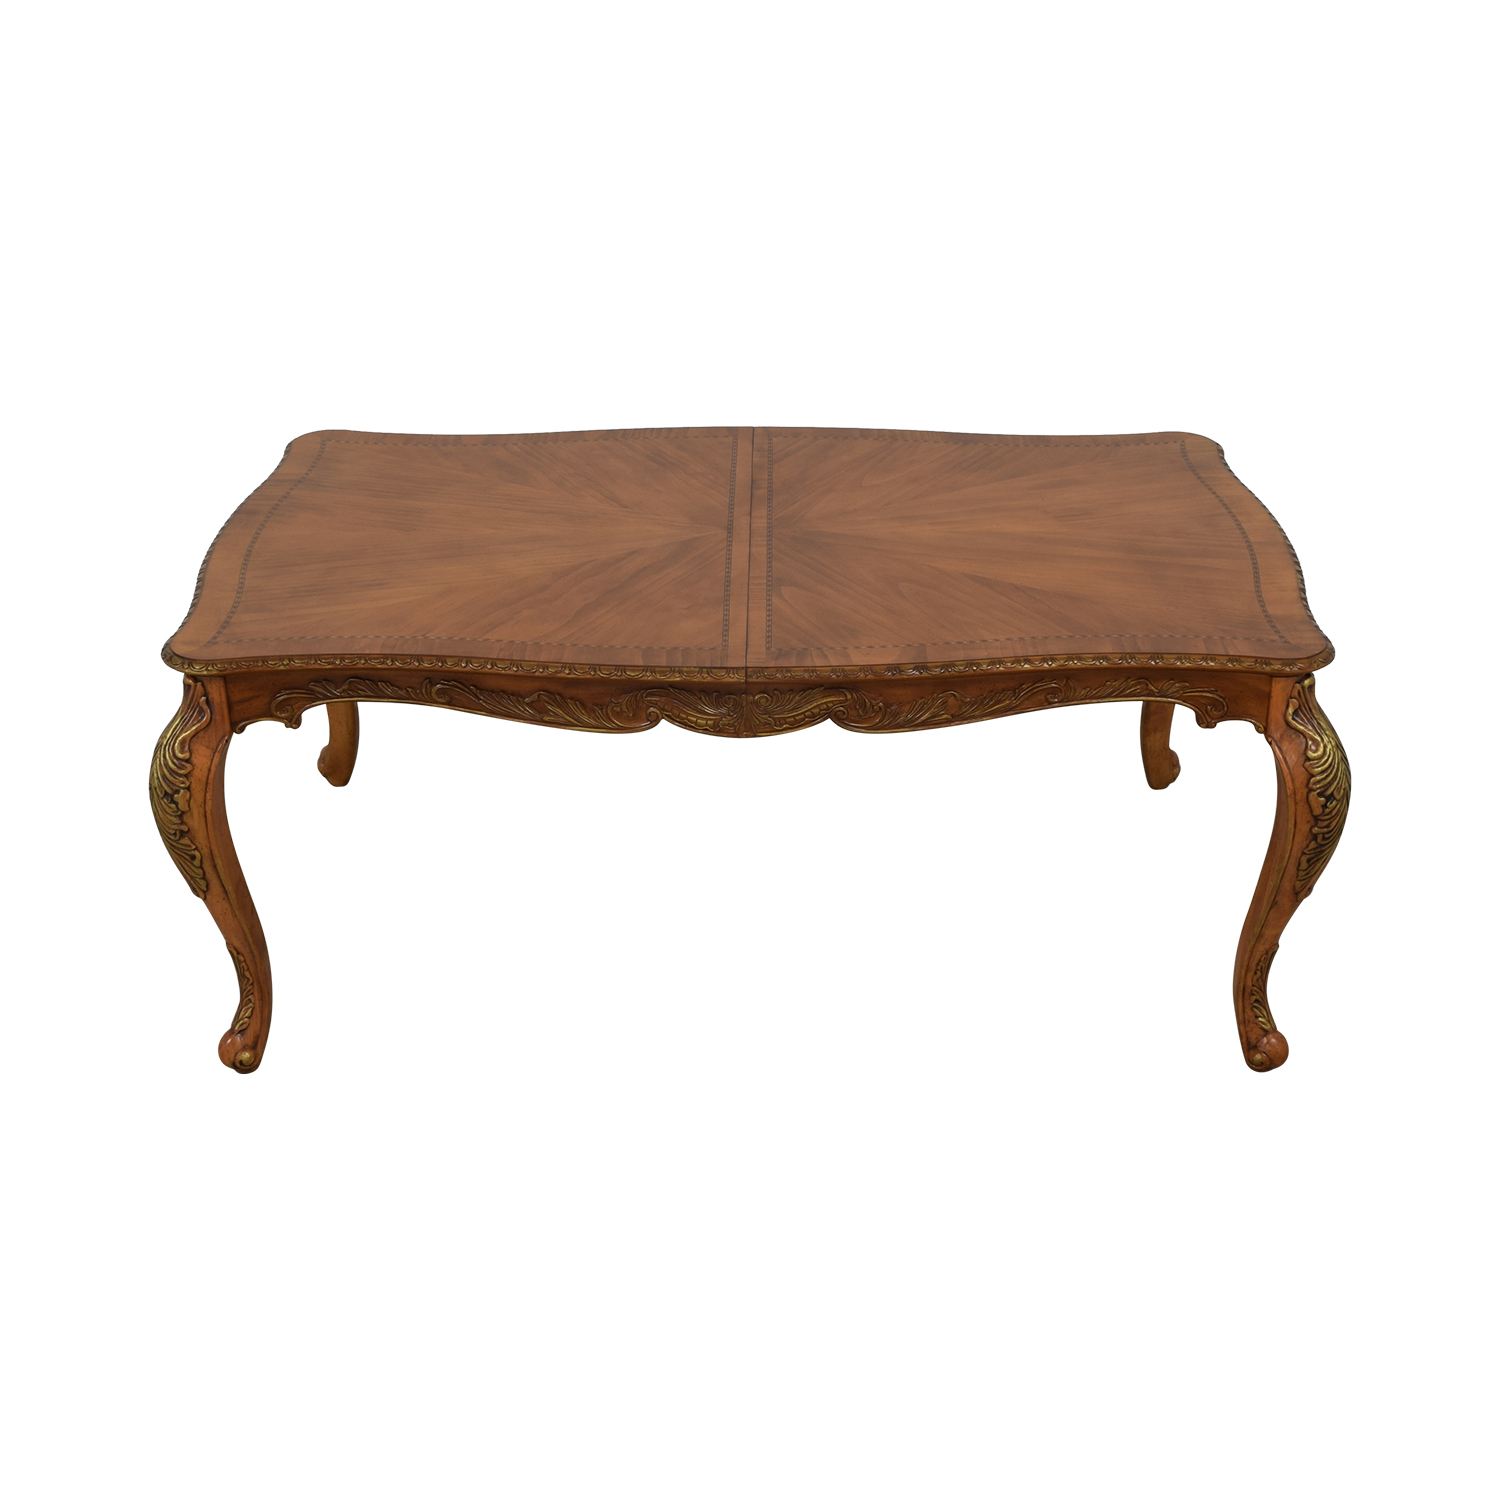 Raymour & Flanigan Raymour & Flanigan Expanding Dining Table Tables